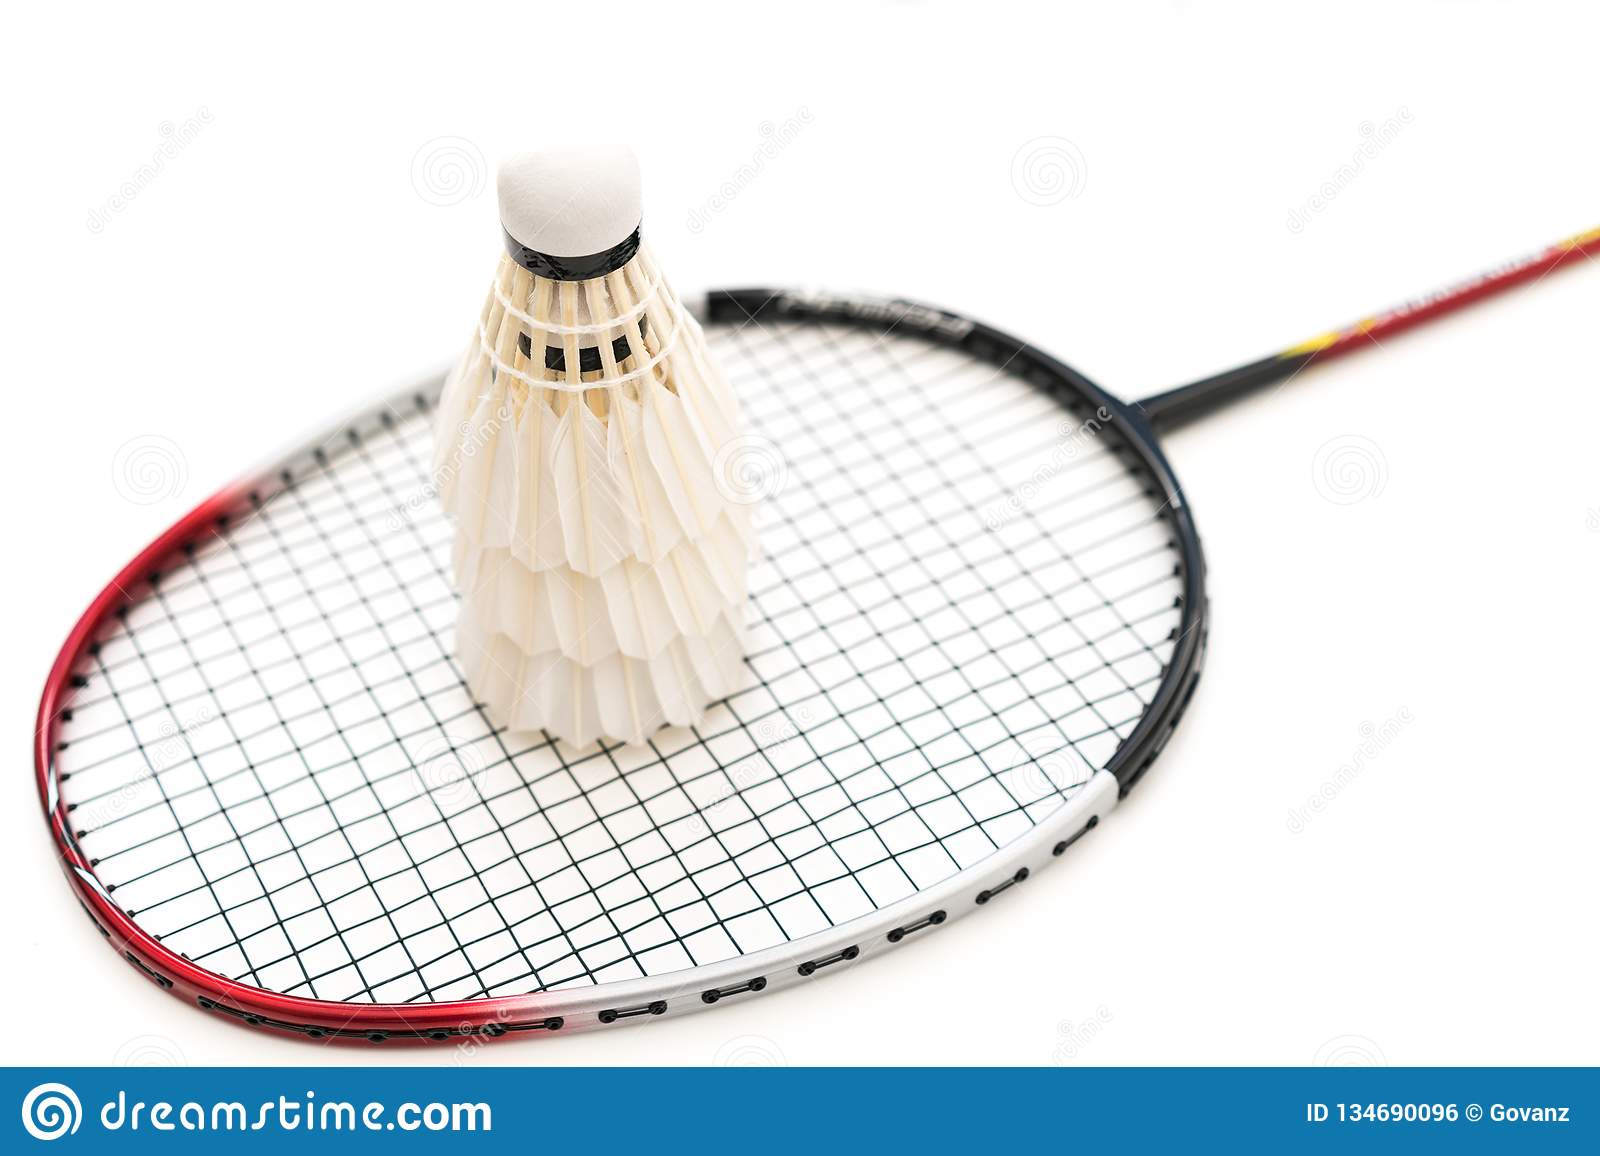 White background image of badminton and racket